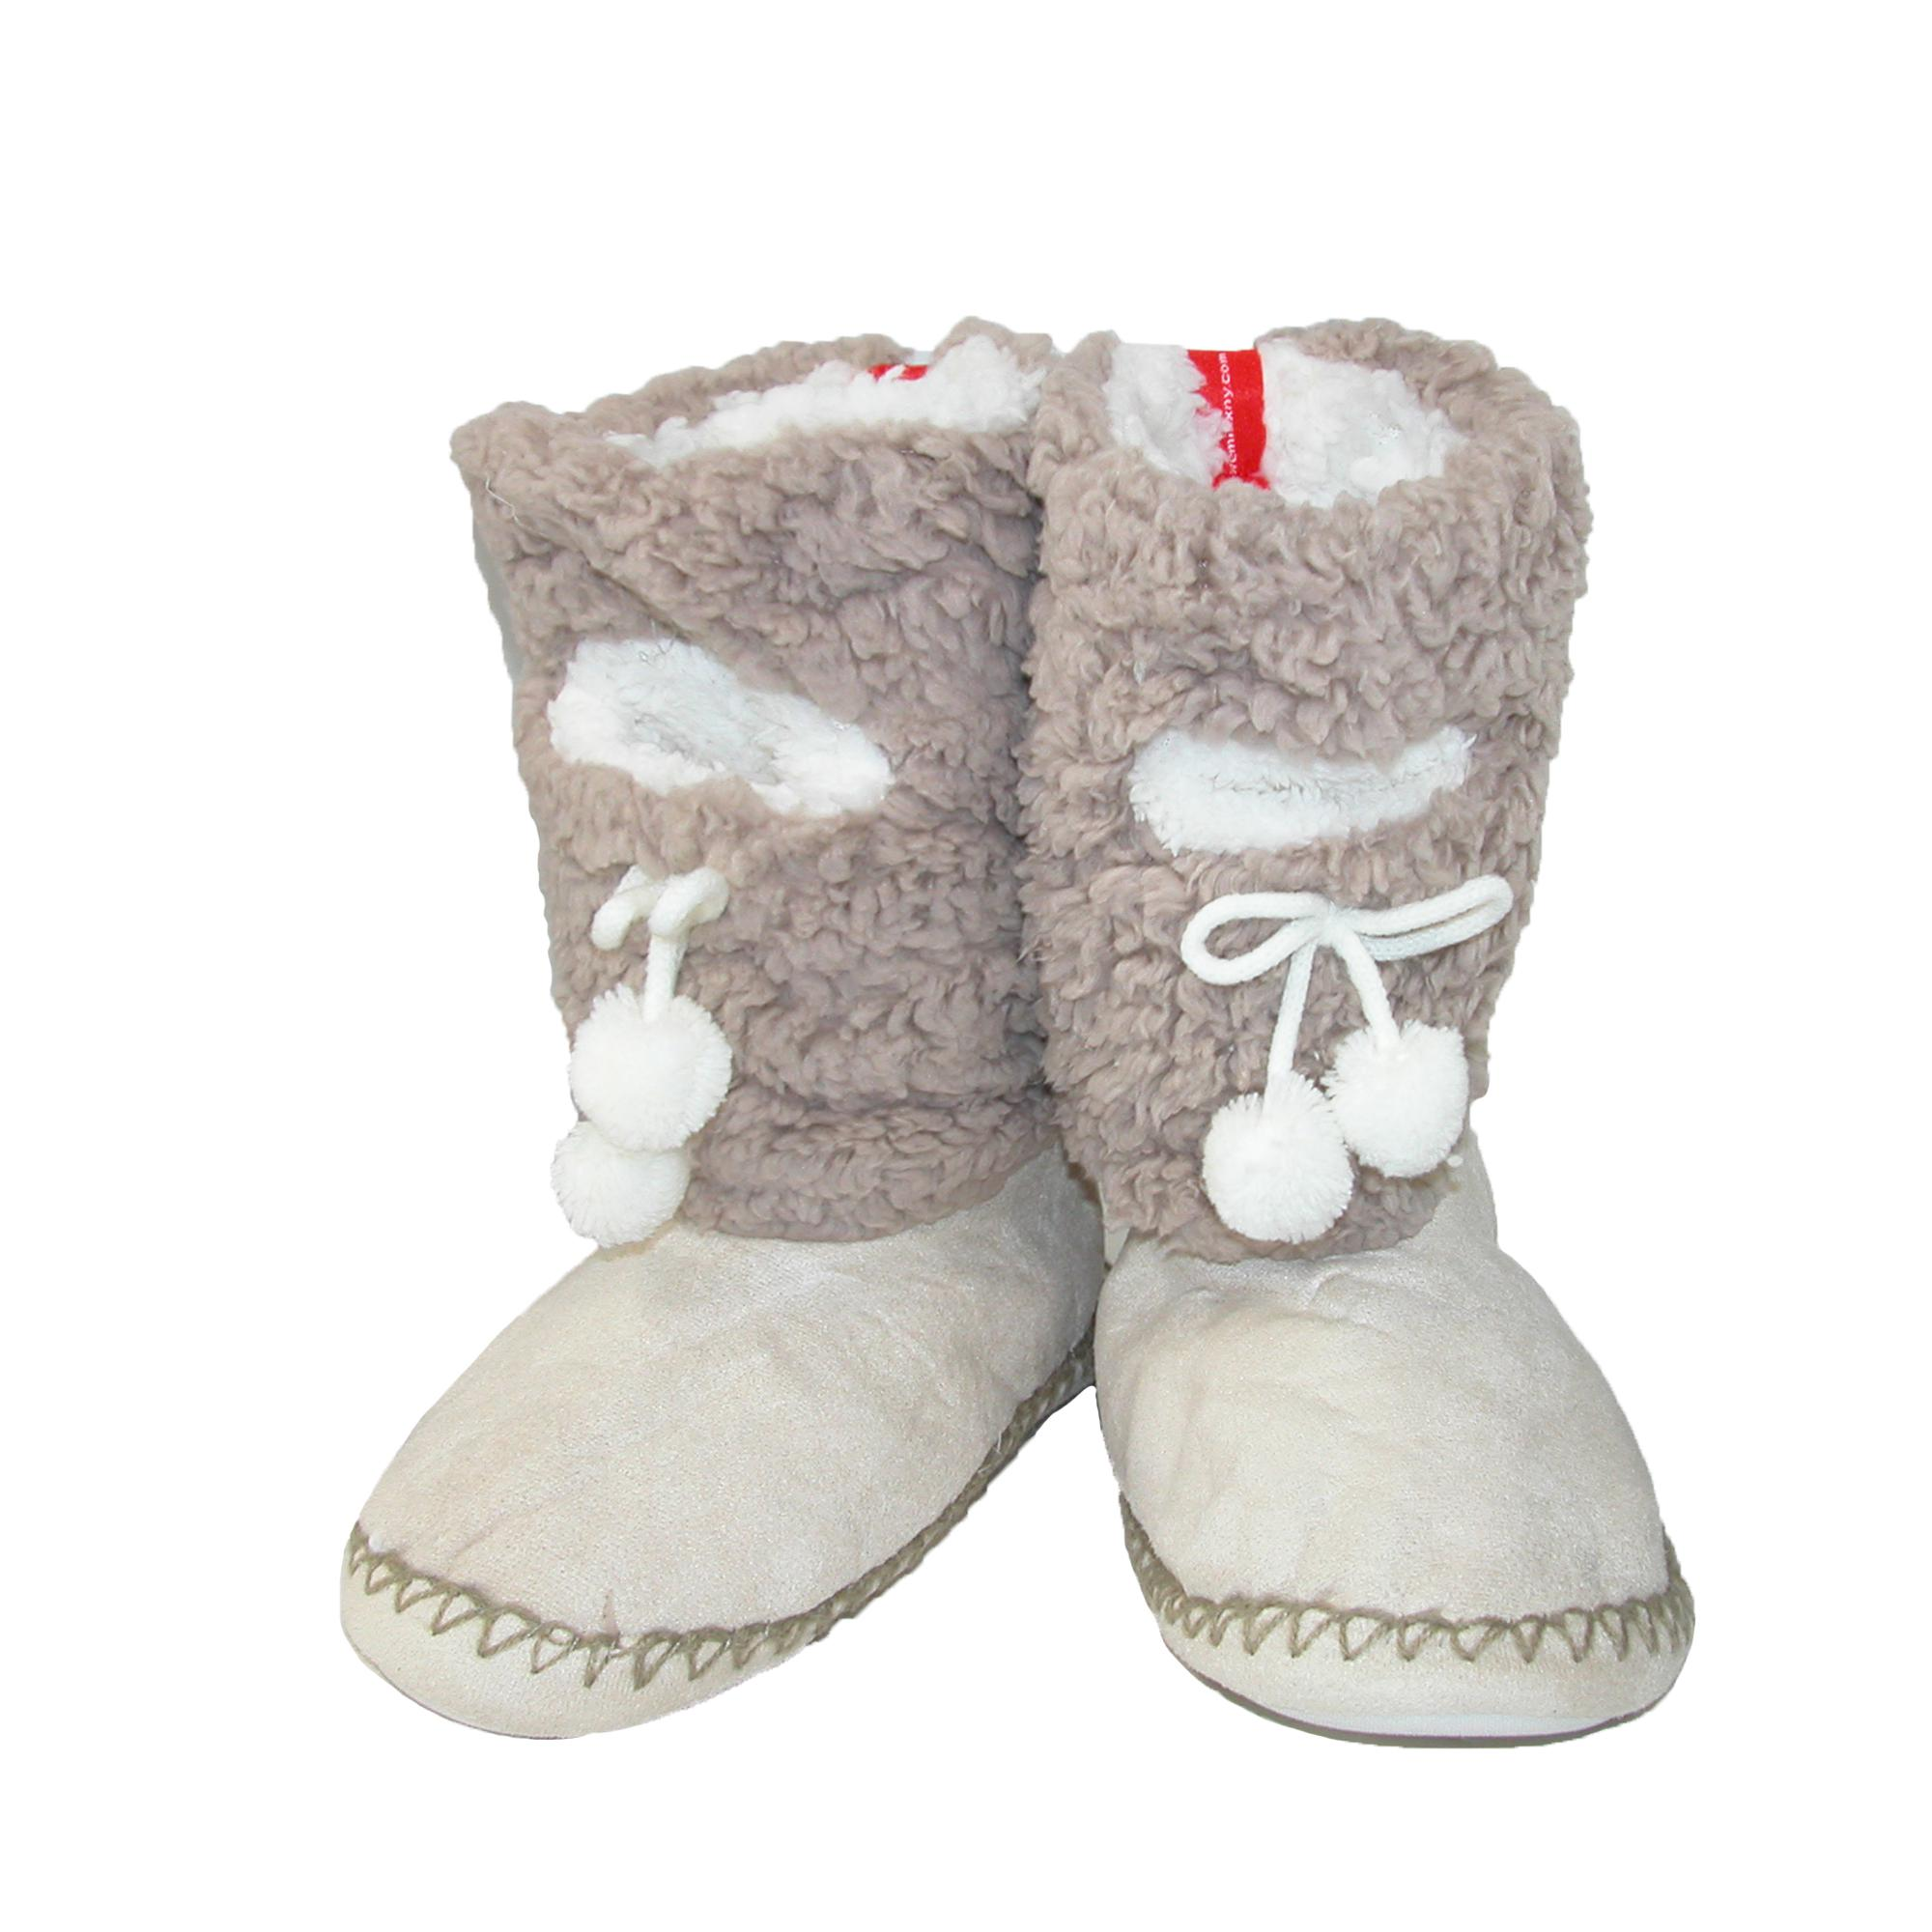 Minx Ny Womens Solid Color Fuzzy Boot Slippers With Phone Pocket